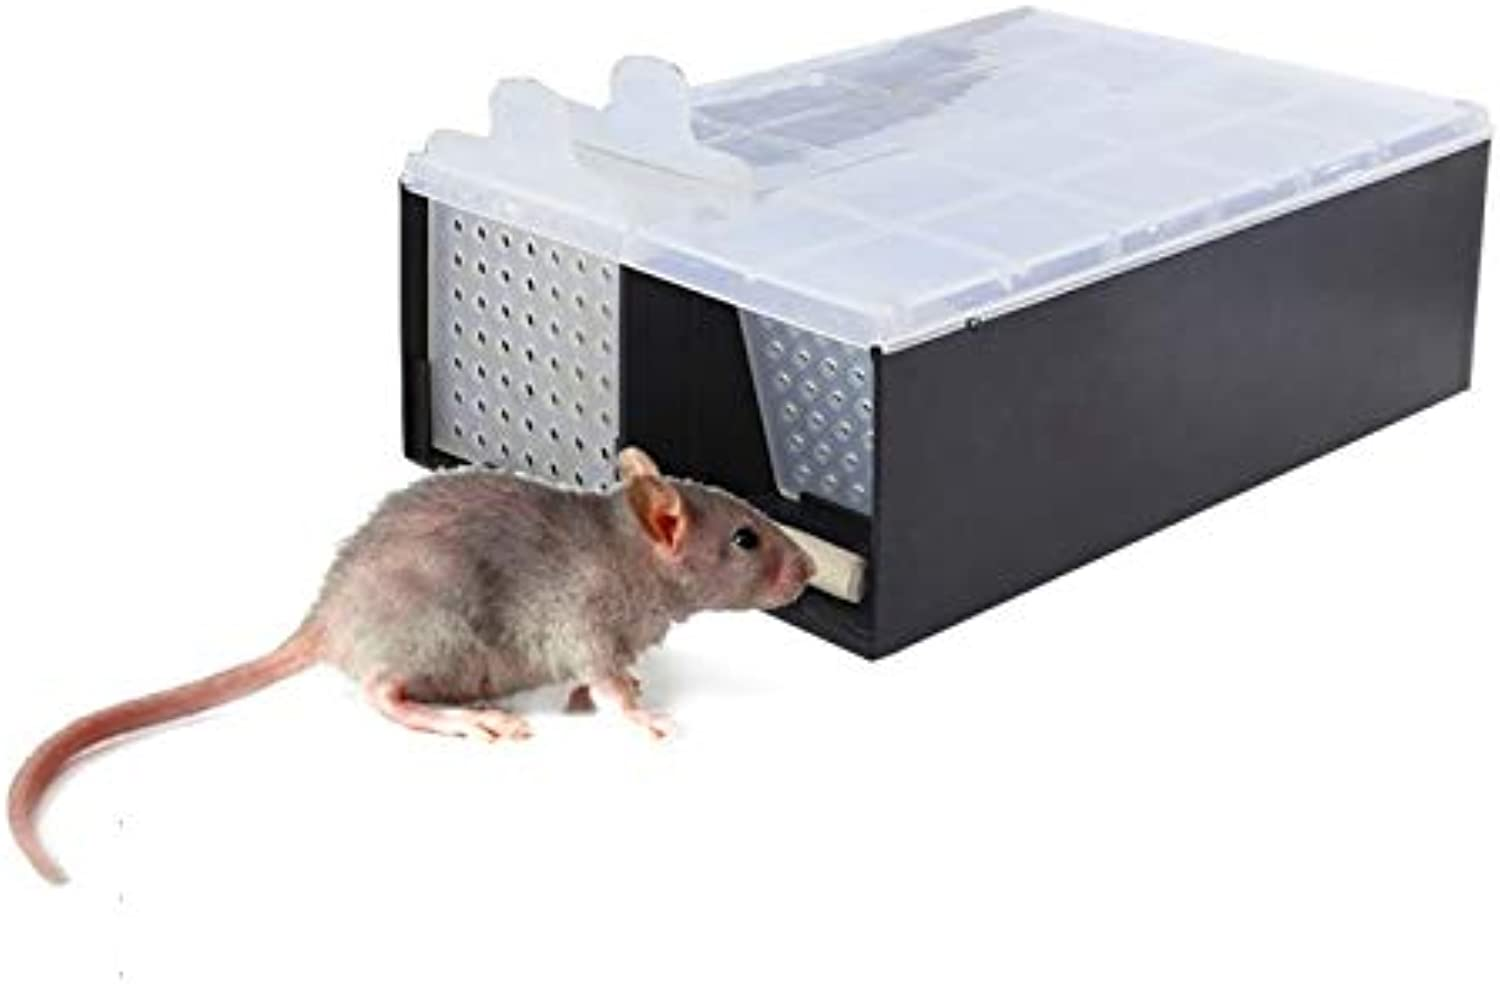 Home Mouse Trap Garden Humane Rat Trap Cage Mice Rodent Repeller Catch Bait Hamster Rat Trap